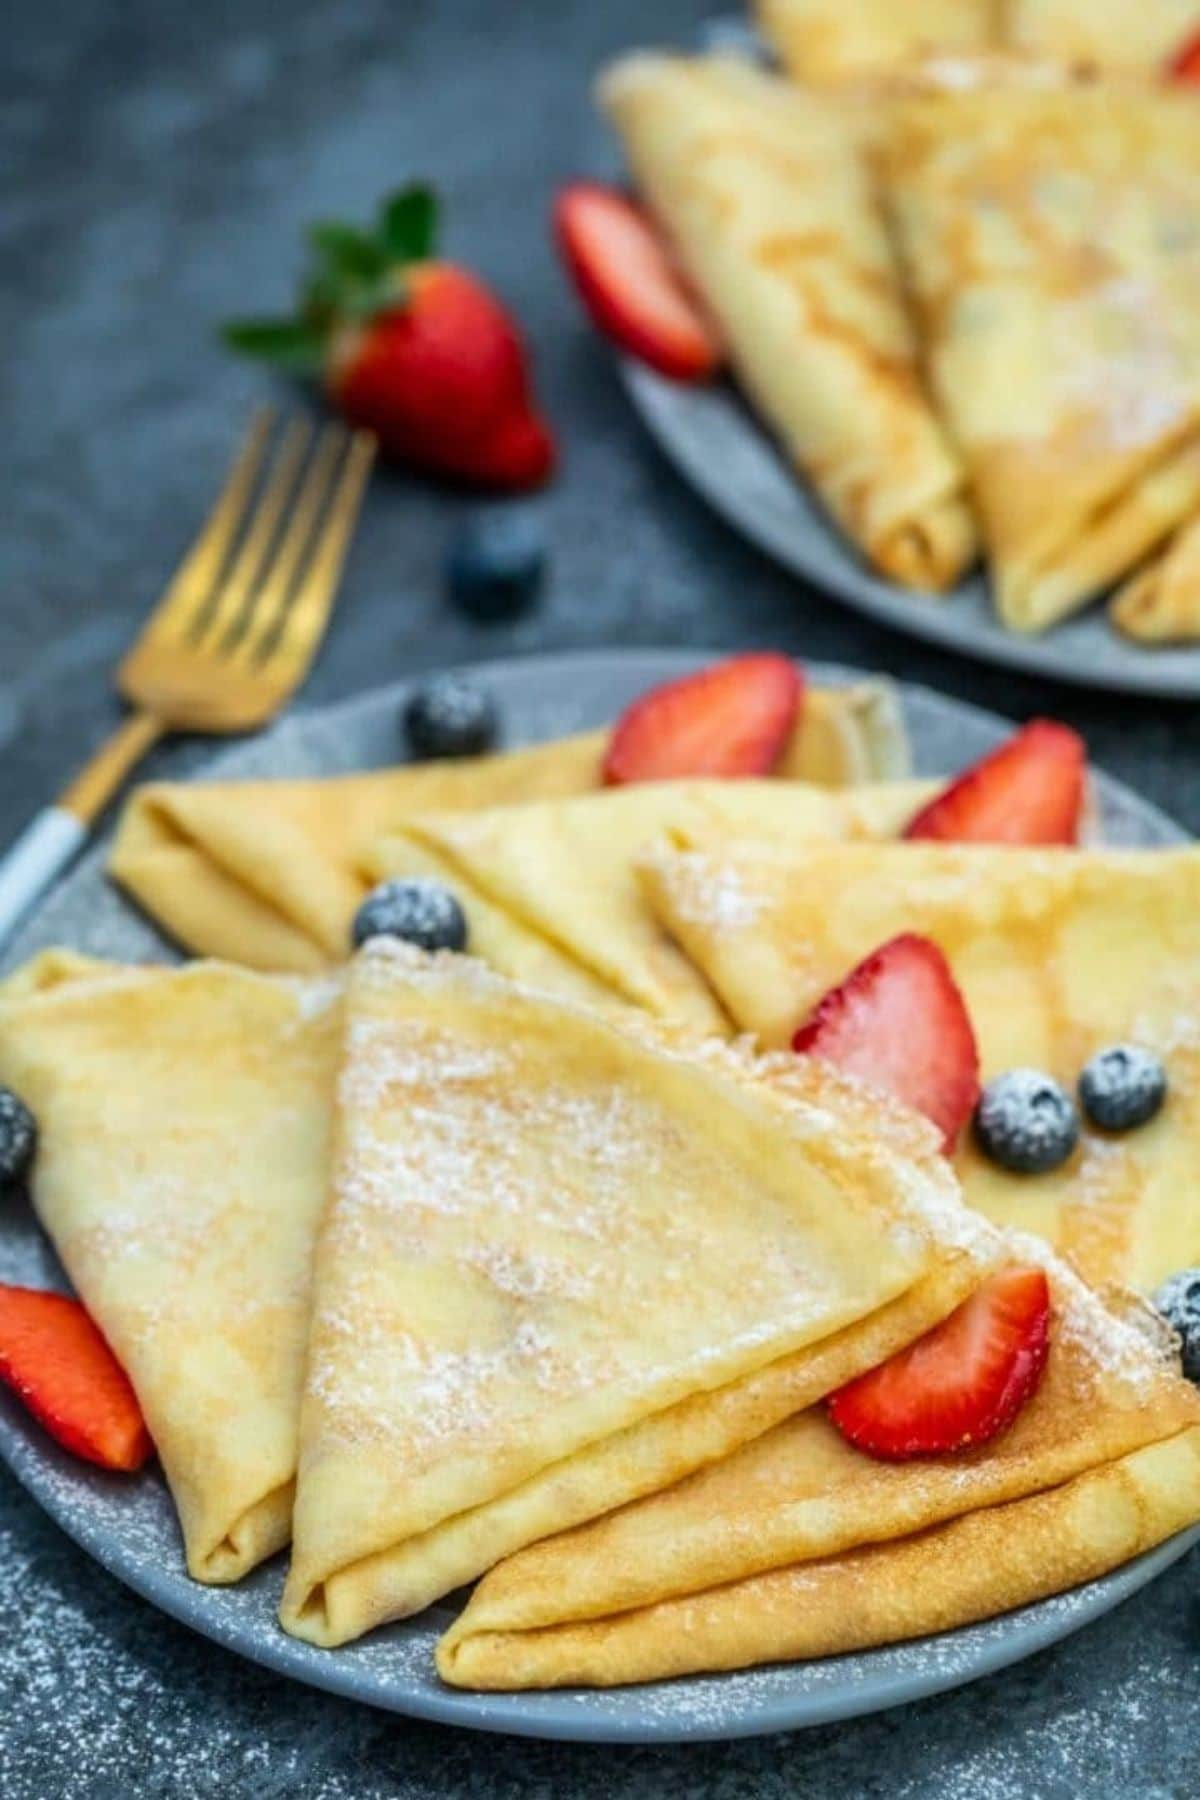 Plate of crepes